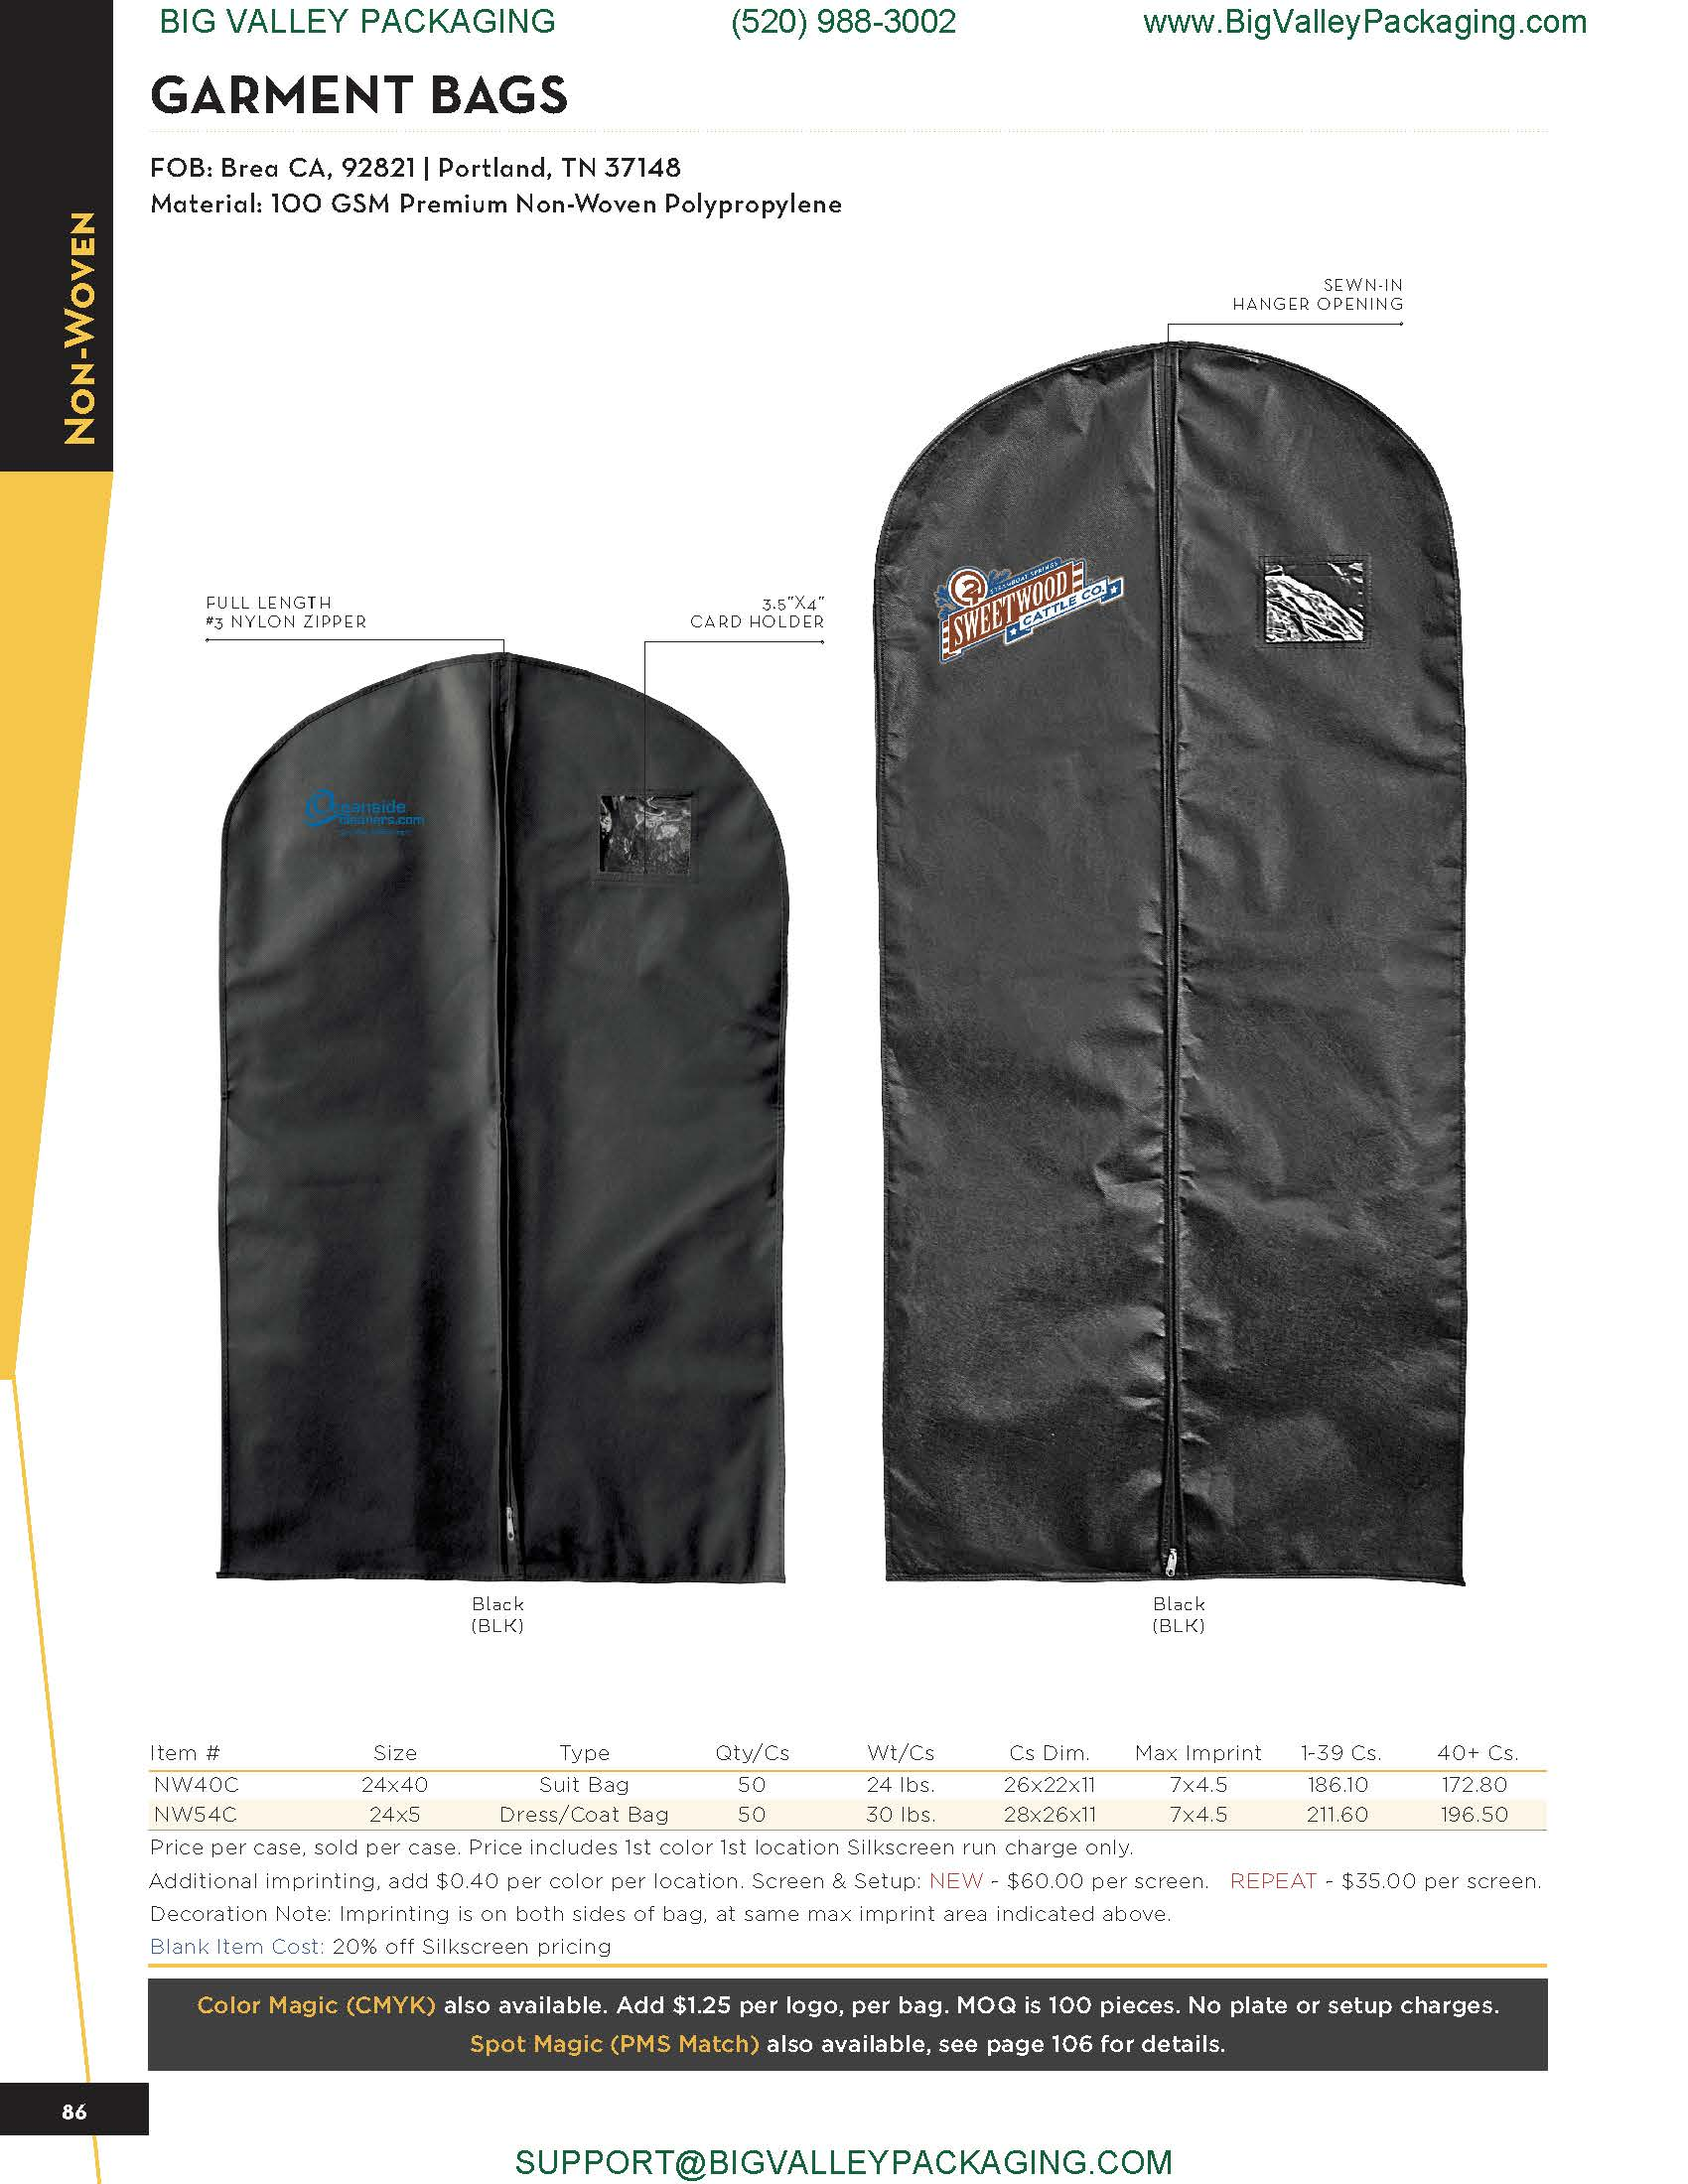 GARMENT BAGS DRY CLEANER CLOTHING